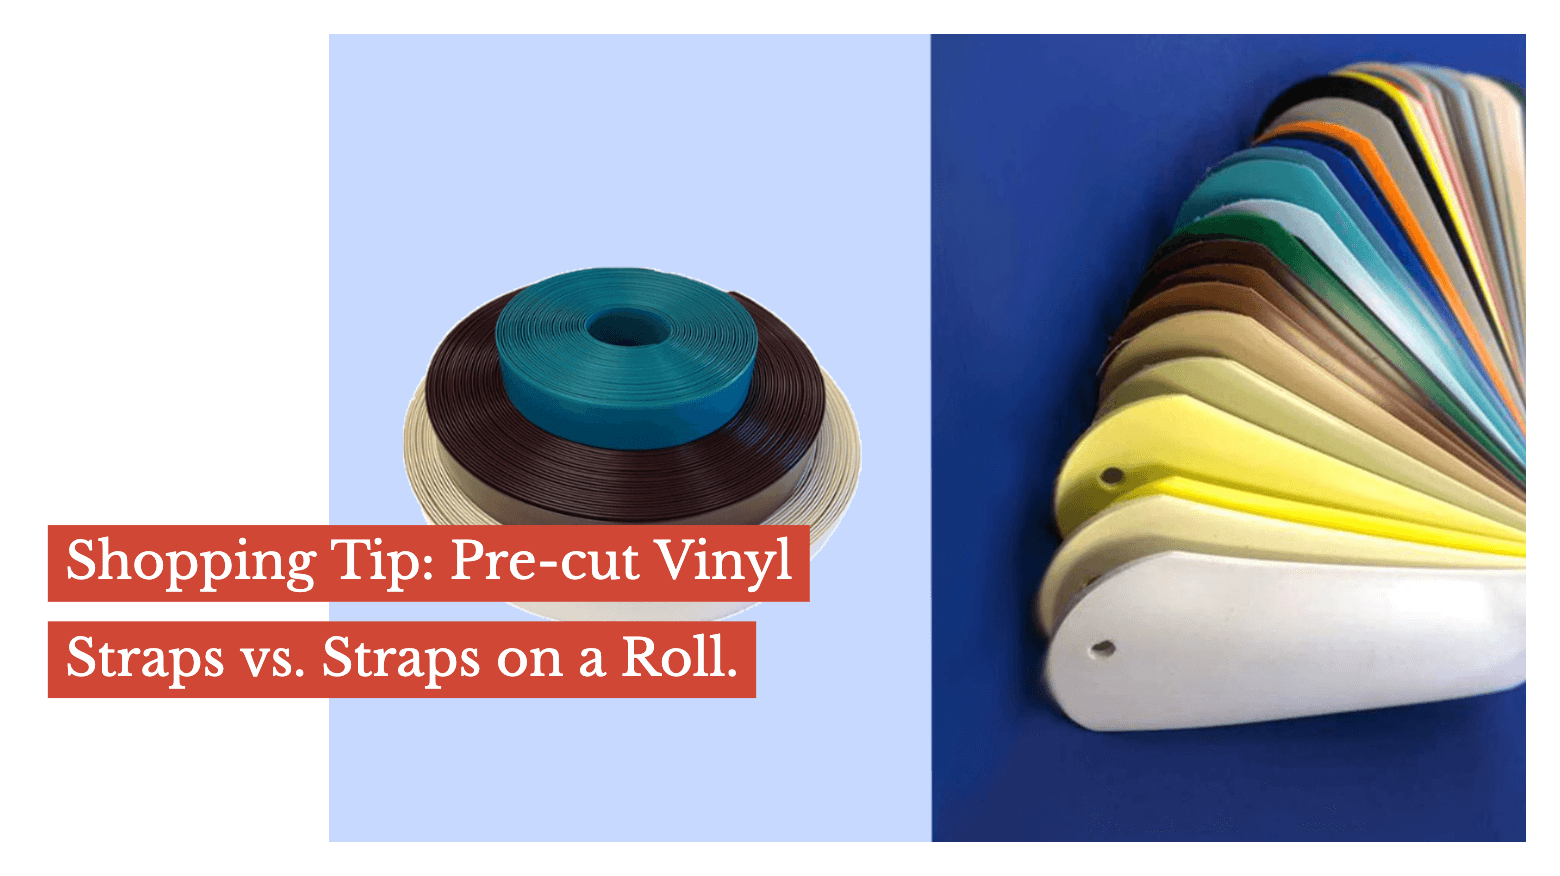 Shopping Tips: Pre-cut Vinyl Straps vs. Straps on a Roll.